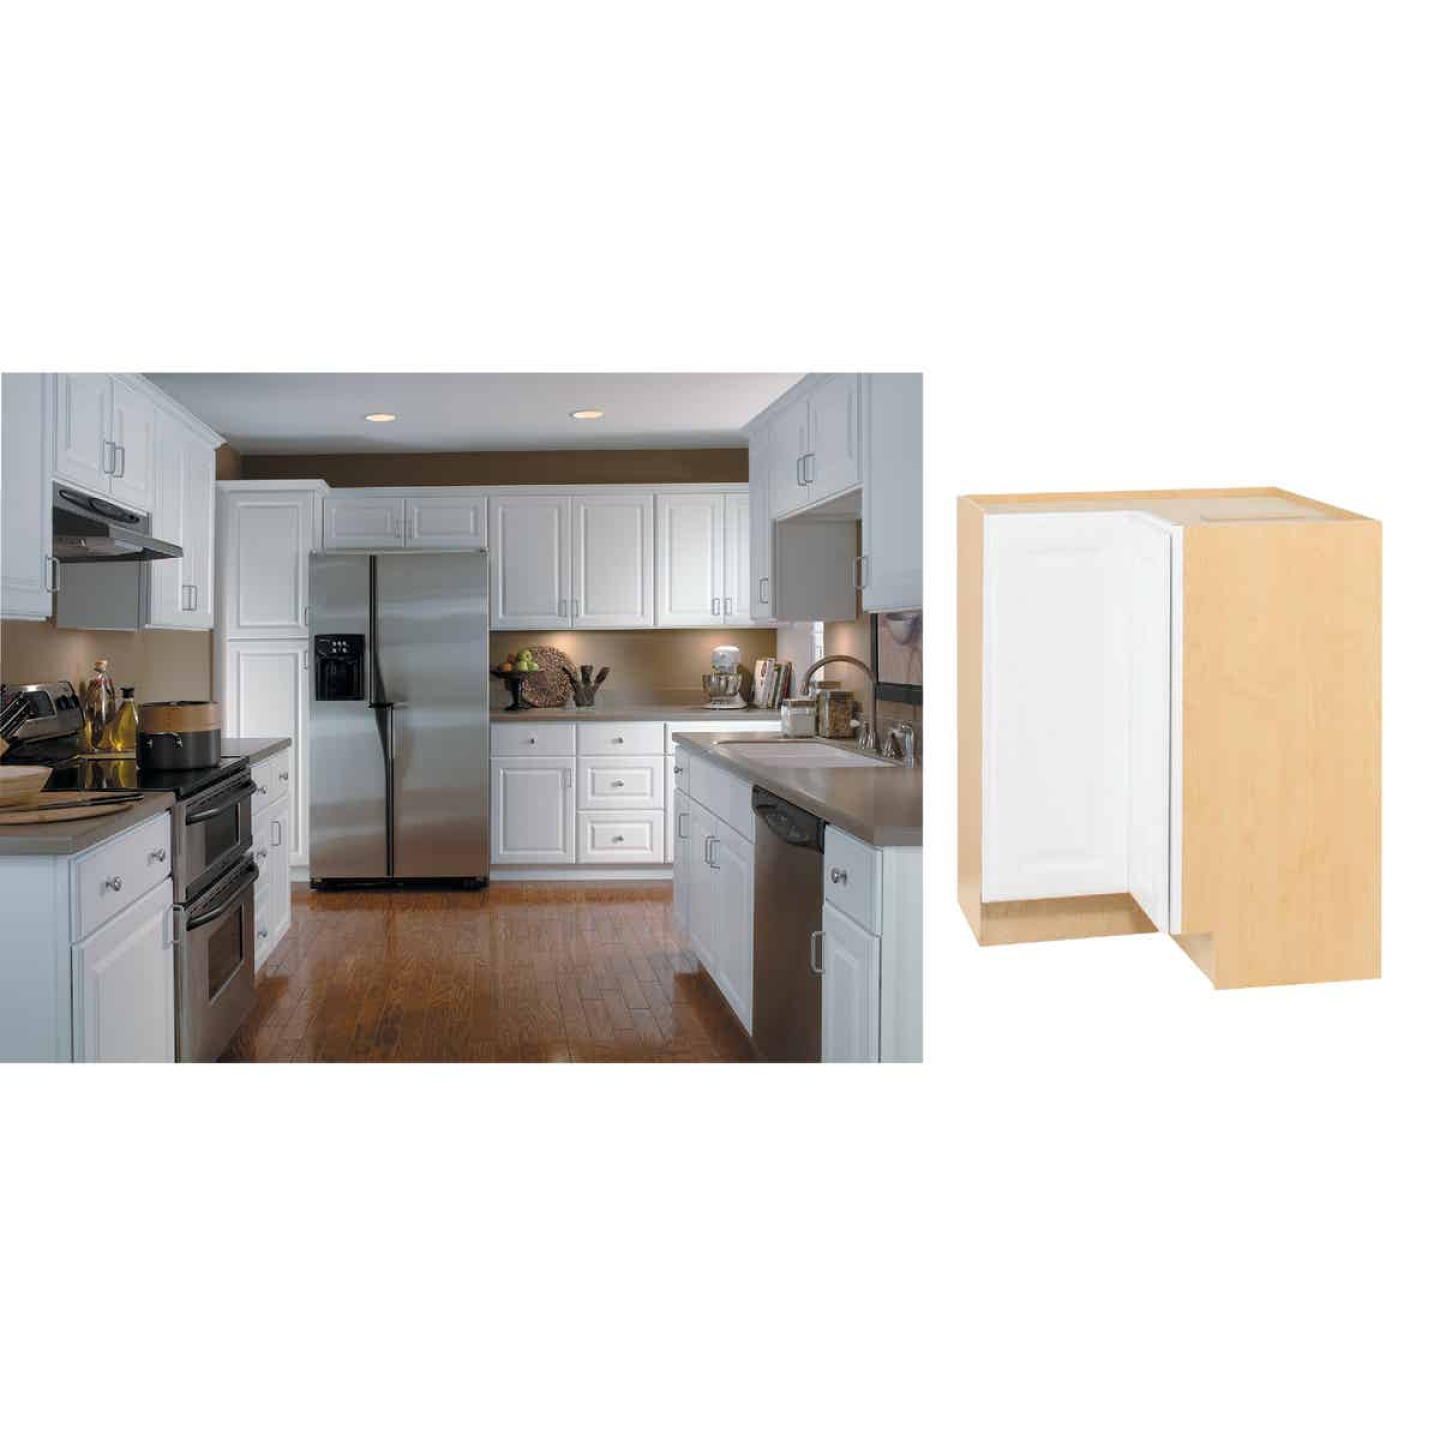 Continental Cabinets Hamilton 36 In W X 34 1 2 In H X 24 In D Satin White Maple Lazy Susan Corner Base Kitchen Cabinet Valu Home Centers For The Do It Yourselfer In You